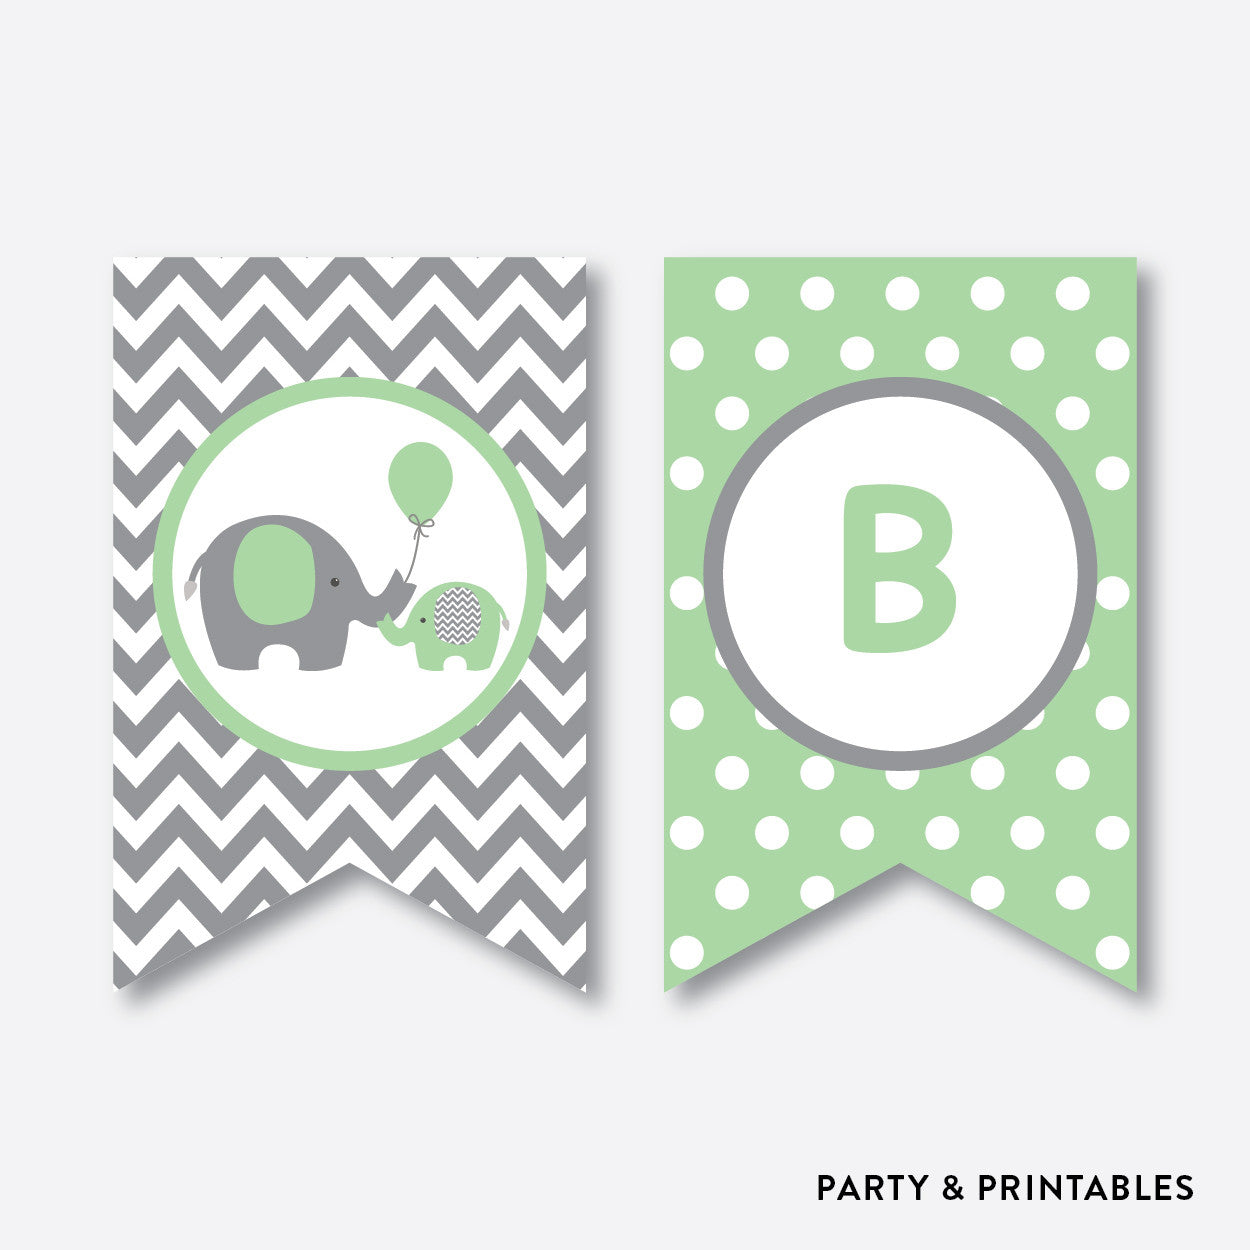 Elephant Party Banner / Baby Shower Banner / Non-Personalized / Instant Download (SBS.40), party printables - Party and Printables